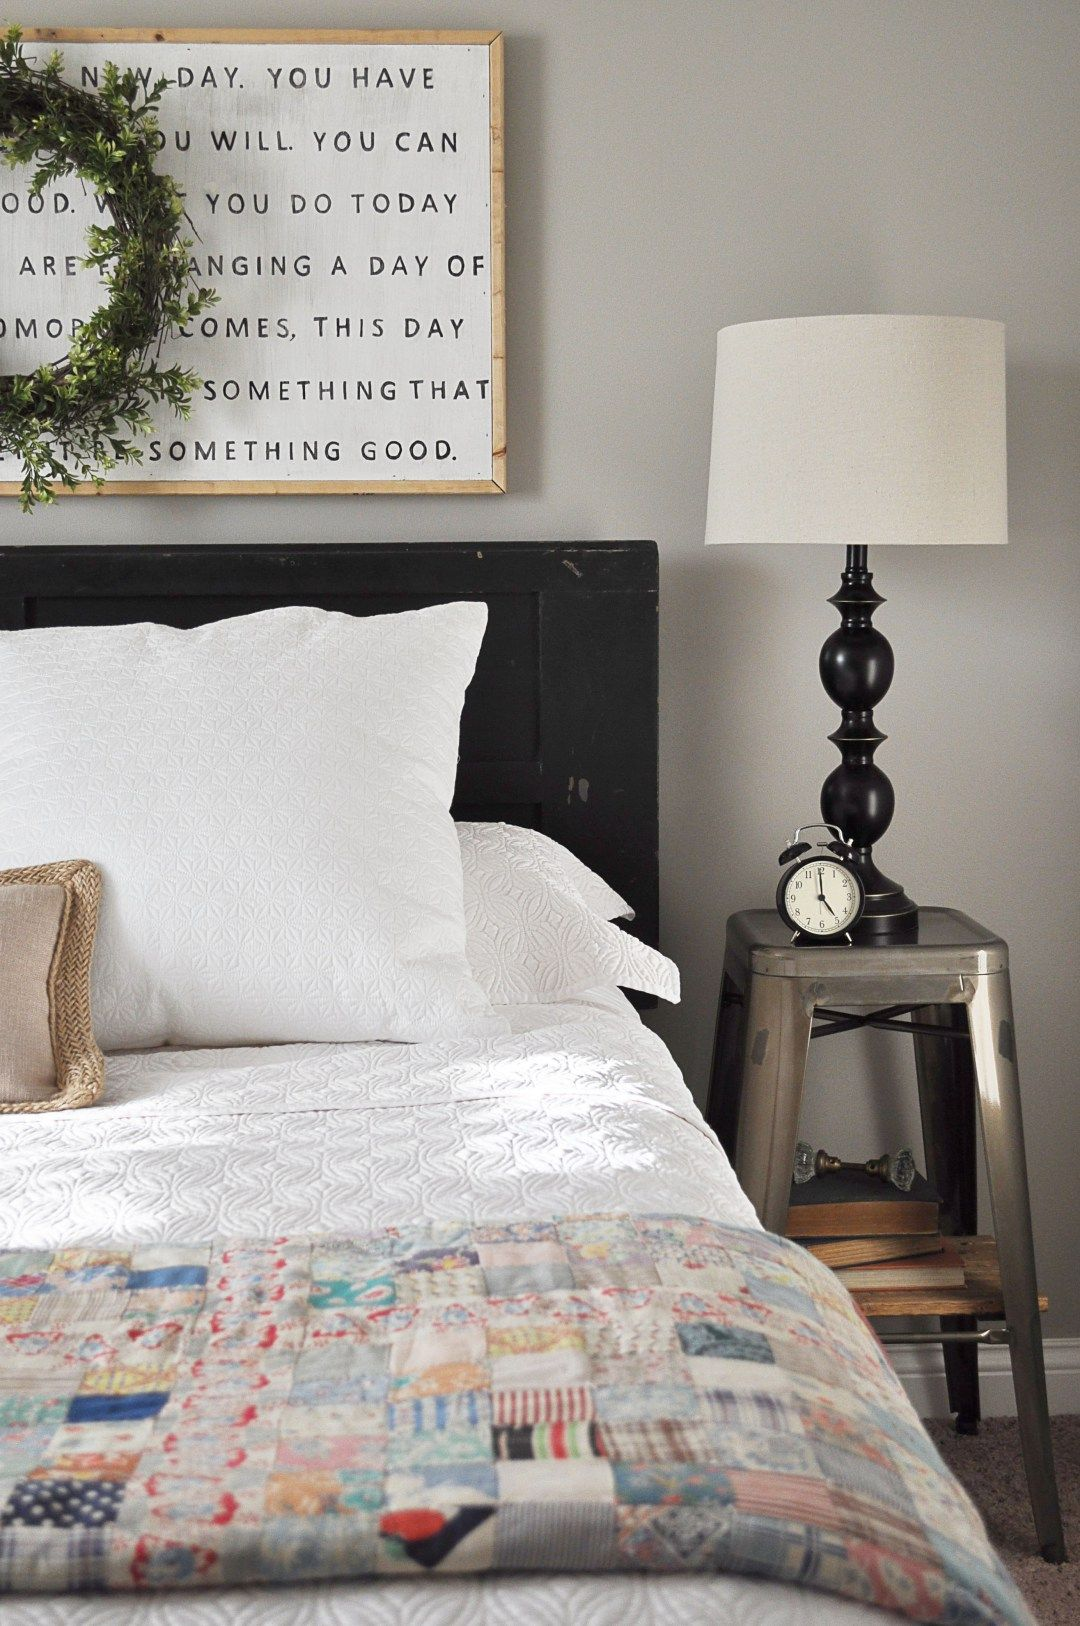 Farmhouse Guest Bedroom | Farmhouse bedroom decor, Guest ... on farmhouse bedroom with wood bed, farmhouse bedroom paint, farmhouse master bedroom, farmhouse furniture and rooms and ideas, farmhouse fixer upper bedroom, old farmhouse decorating ideas, farmhouse powder room decorating ideas, farmhouse living room, farmhouse bedroom window treatments, farmhouse bedroom style, rustic farmhouse decorating ideas, rustic farmhouse bedroom ideas, farmhouse bathroom ideas, rustic country decorating ideas, modern farmhouse decorating ideas, farmhouse bedroom furniture, primitive country decorating ideas, country farmhouse bedroom ideas, farmhouse decor, farmhouse bedroom sets ideas,